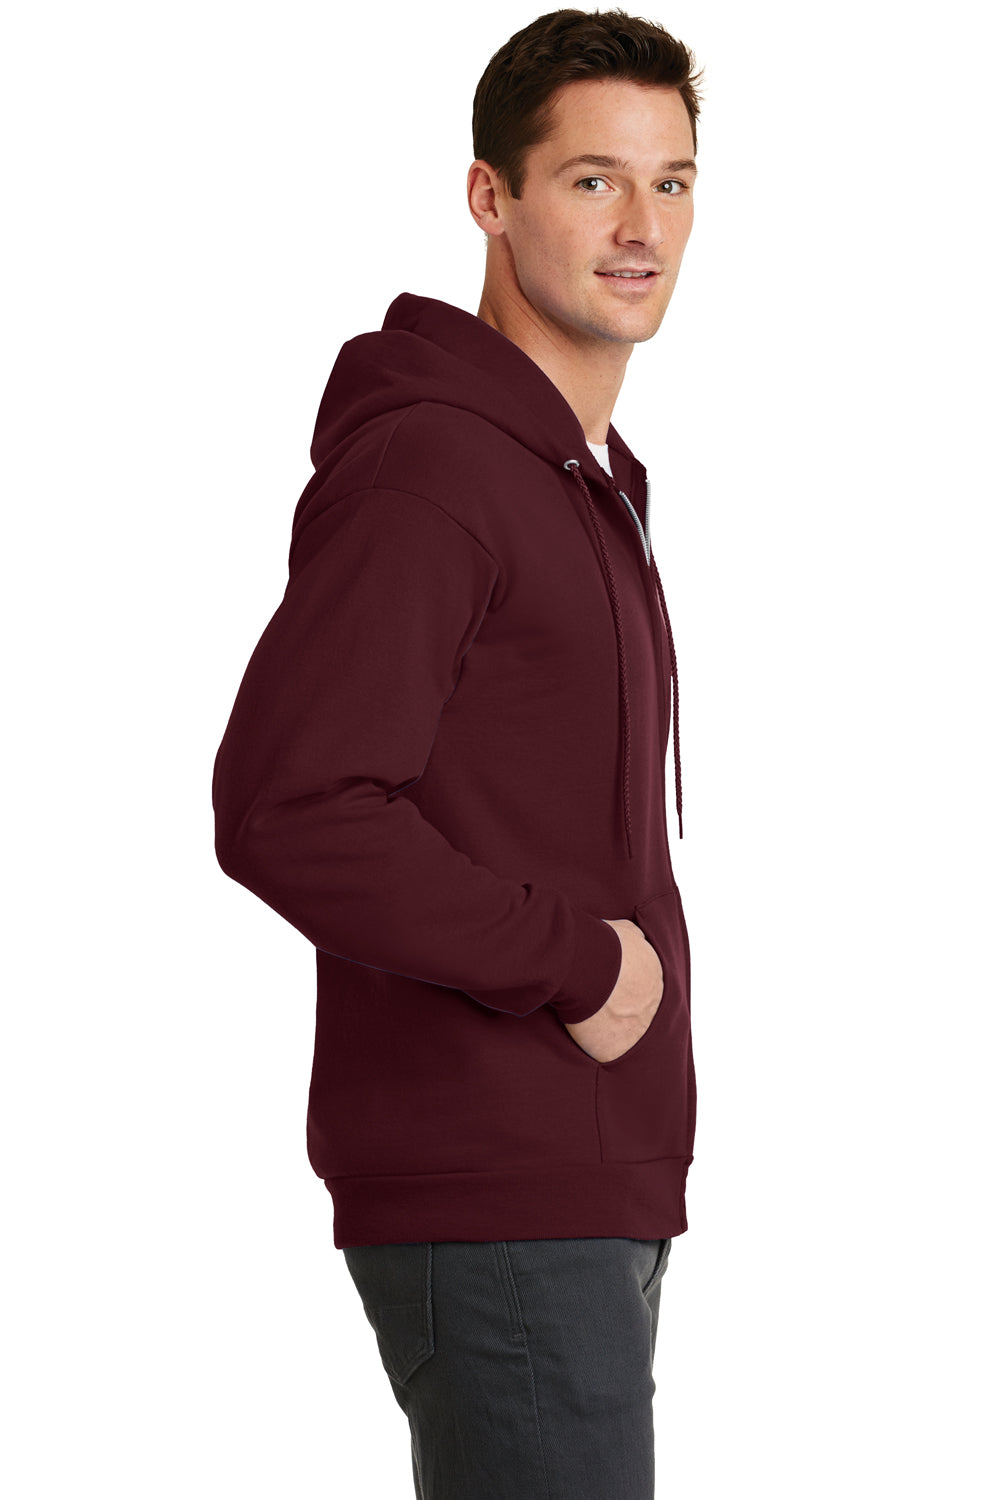 Port & Company PC78ZH Mens Core Fleece Full Zip Hooded Sweatshirt Hoodie Maroon Side